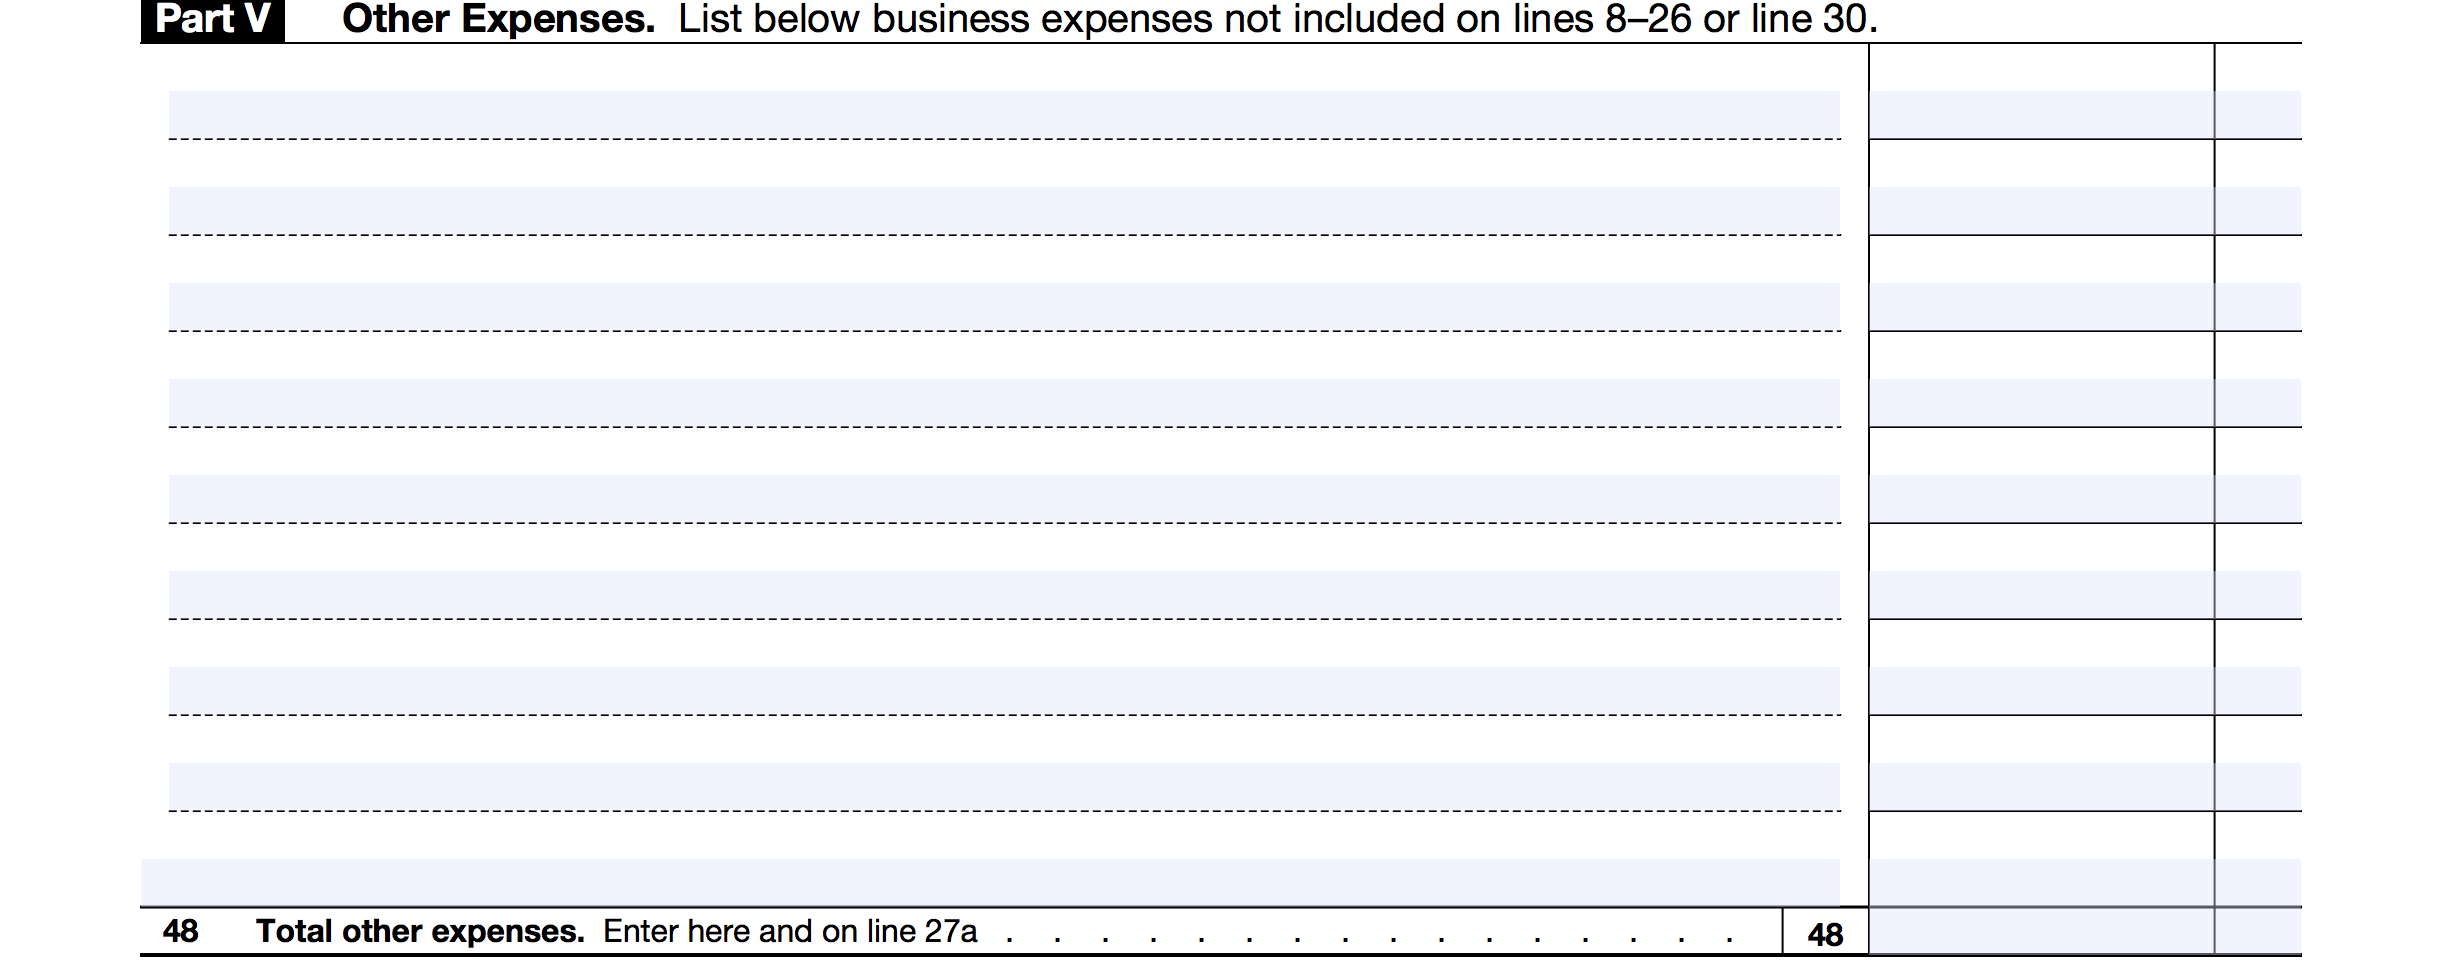 Schedule C Part 5: Other expenses